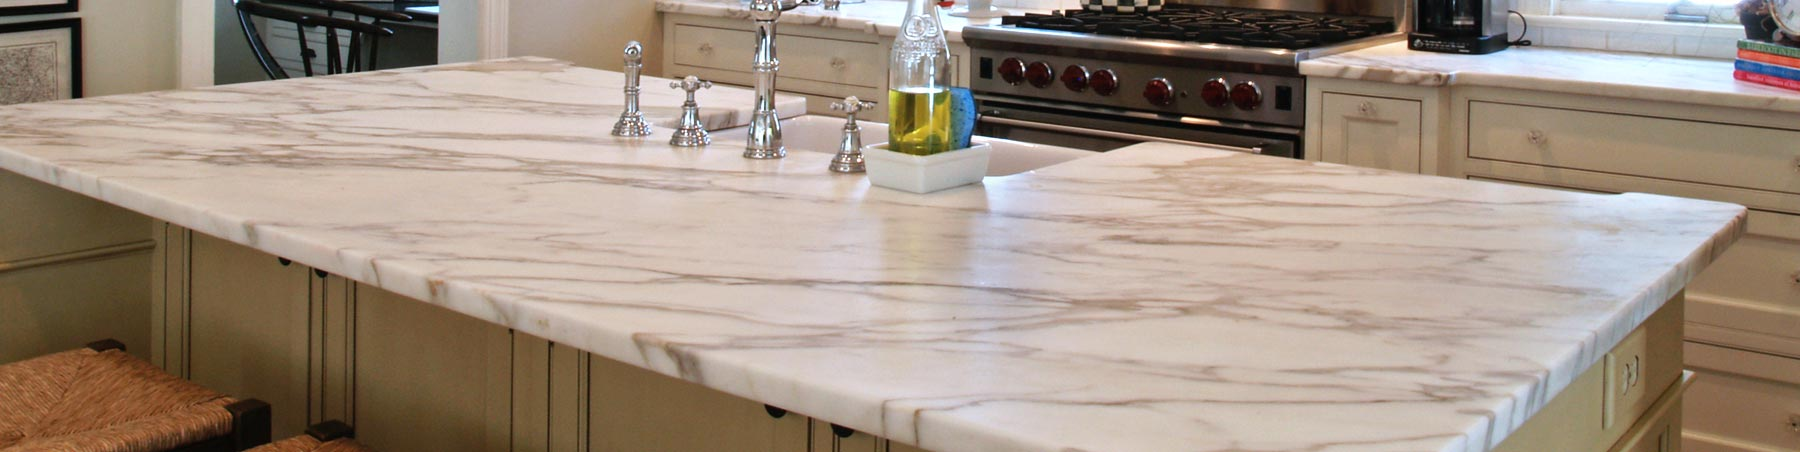 Whats The Difference Intrepid Enterprises Inc - Fake marble bathroom countertops